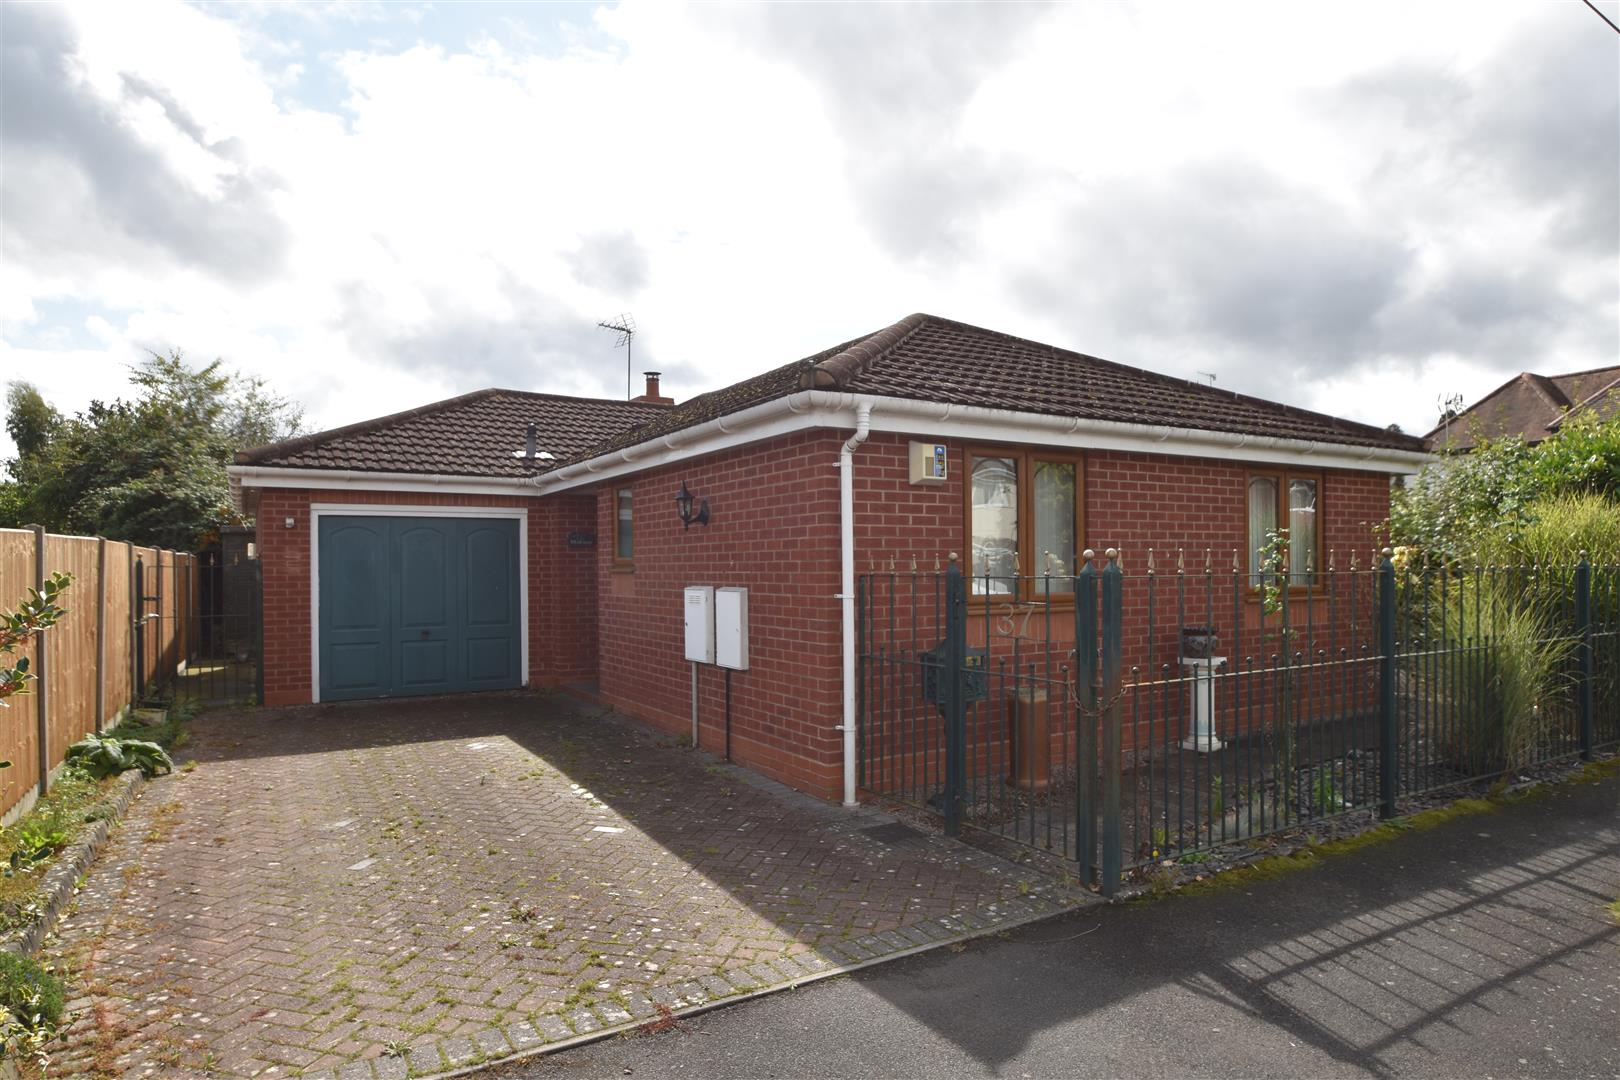 2 Bedrooms Detached Bungalow for sale in Morton Road, Fernhill Heath, Worcester